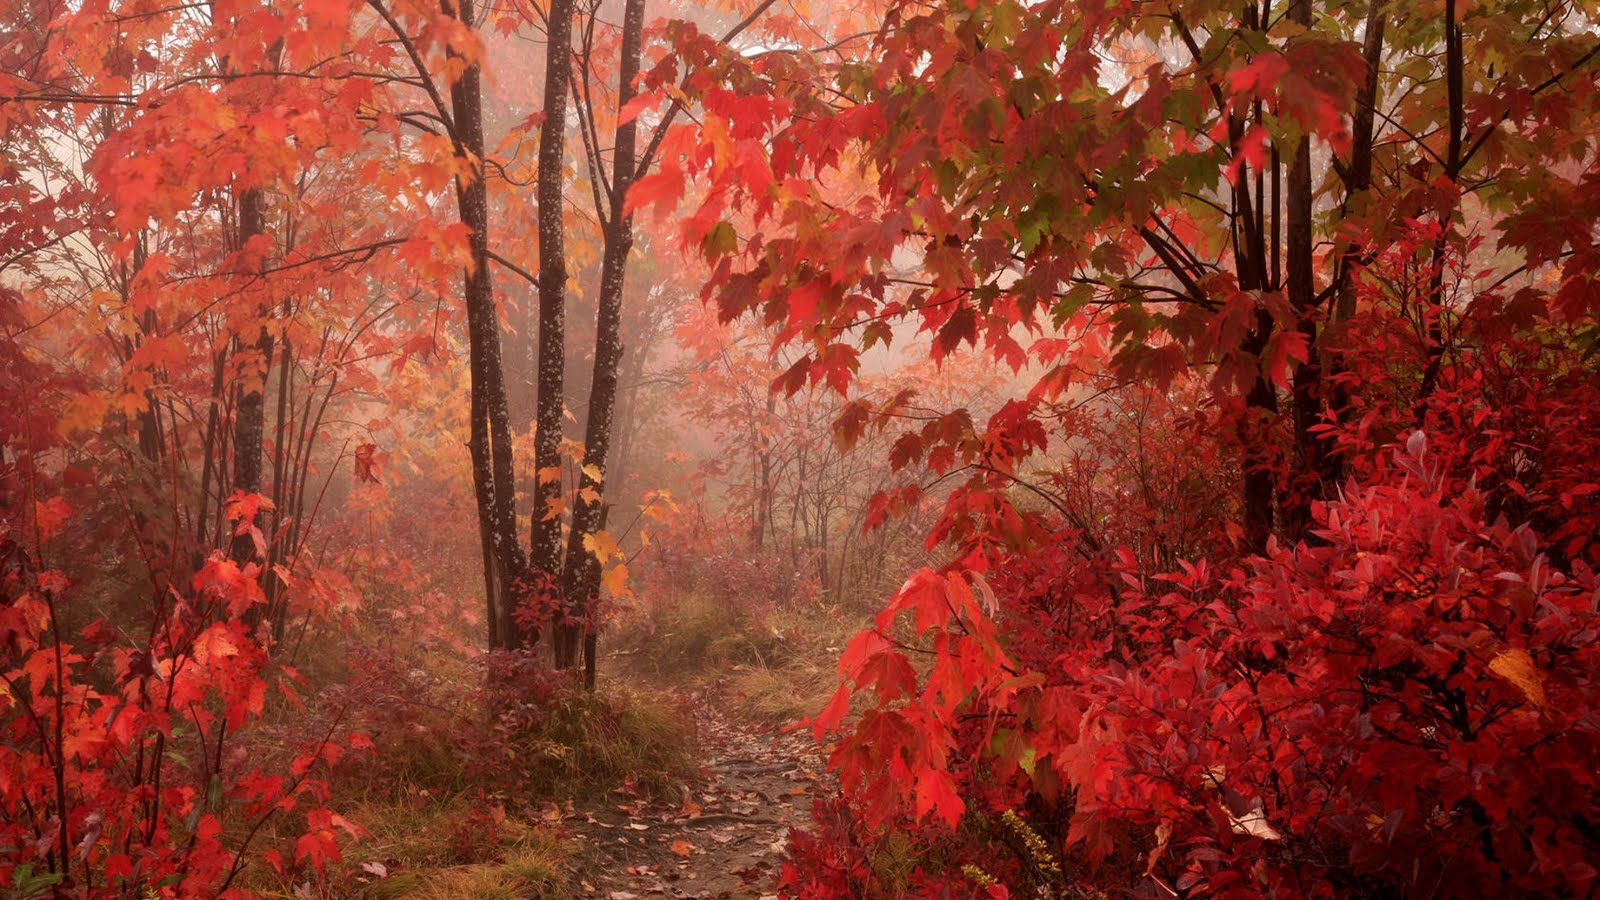 Fall Red Leaves Forest Floor Autumn Season Colors Epic HD Wallpaper 1600x900